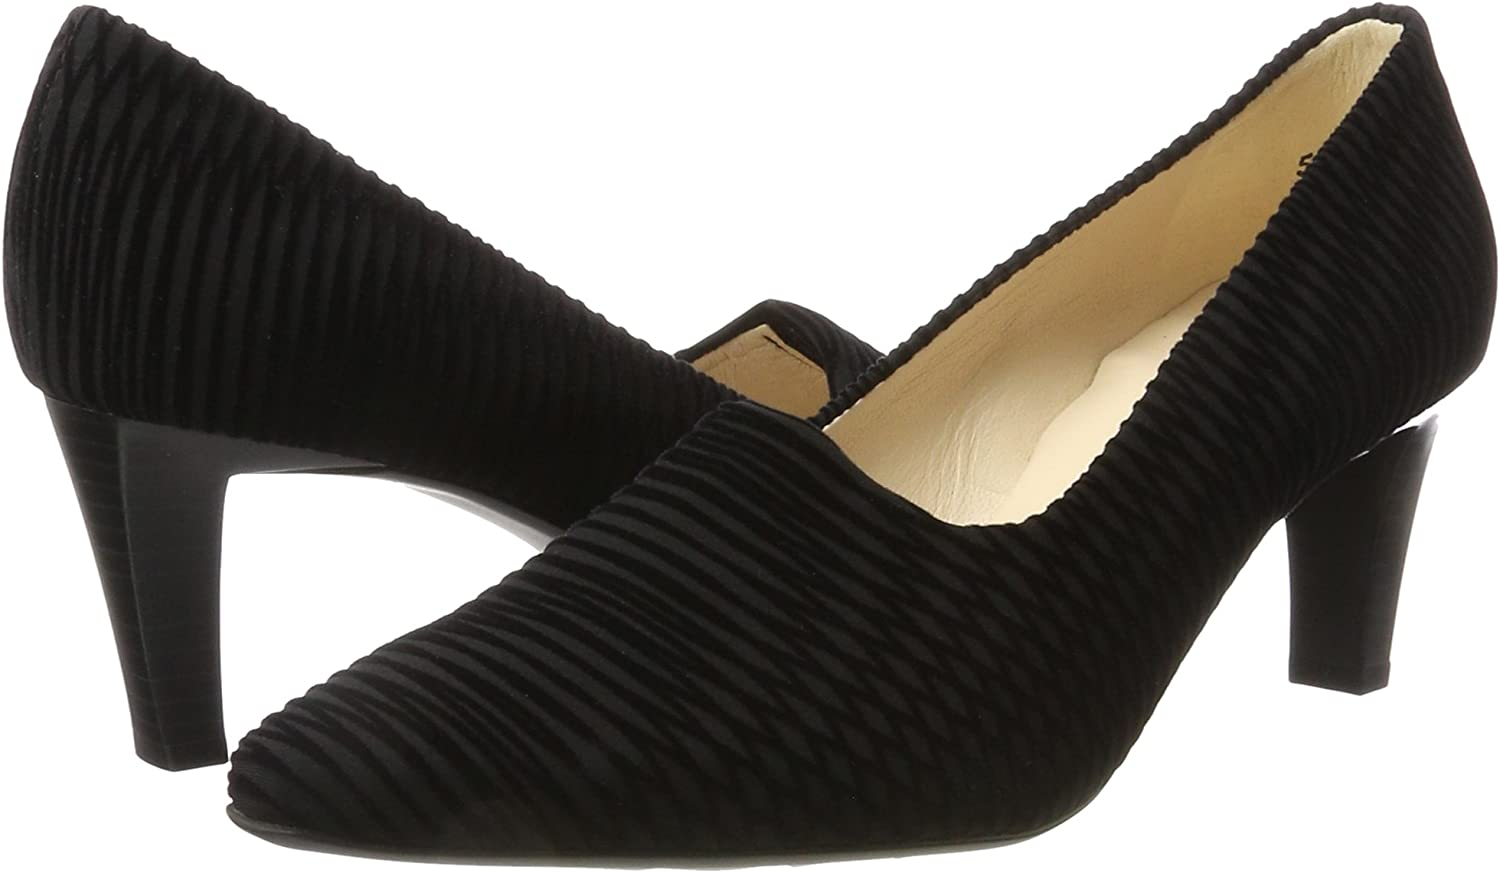 Peter Kaiser Womens Mova Dress Court Shoes